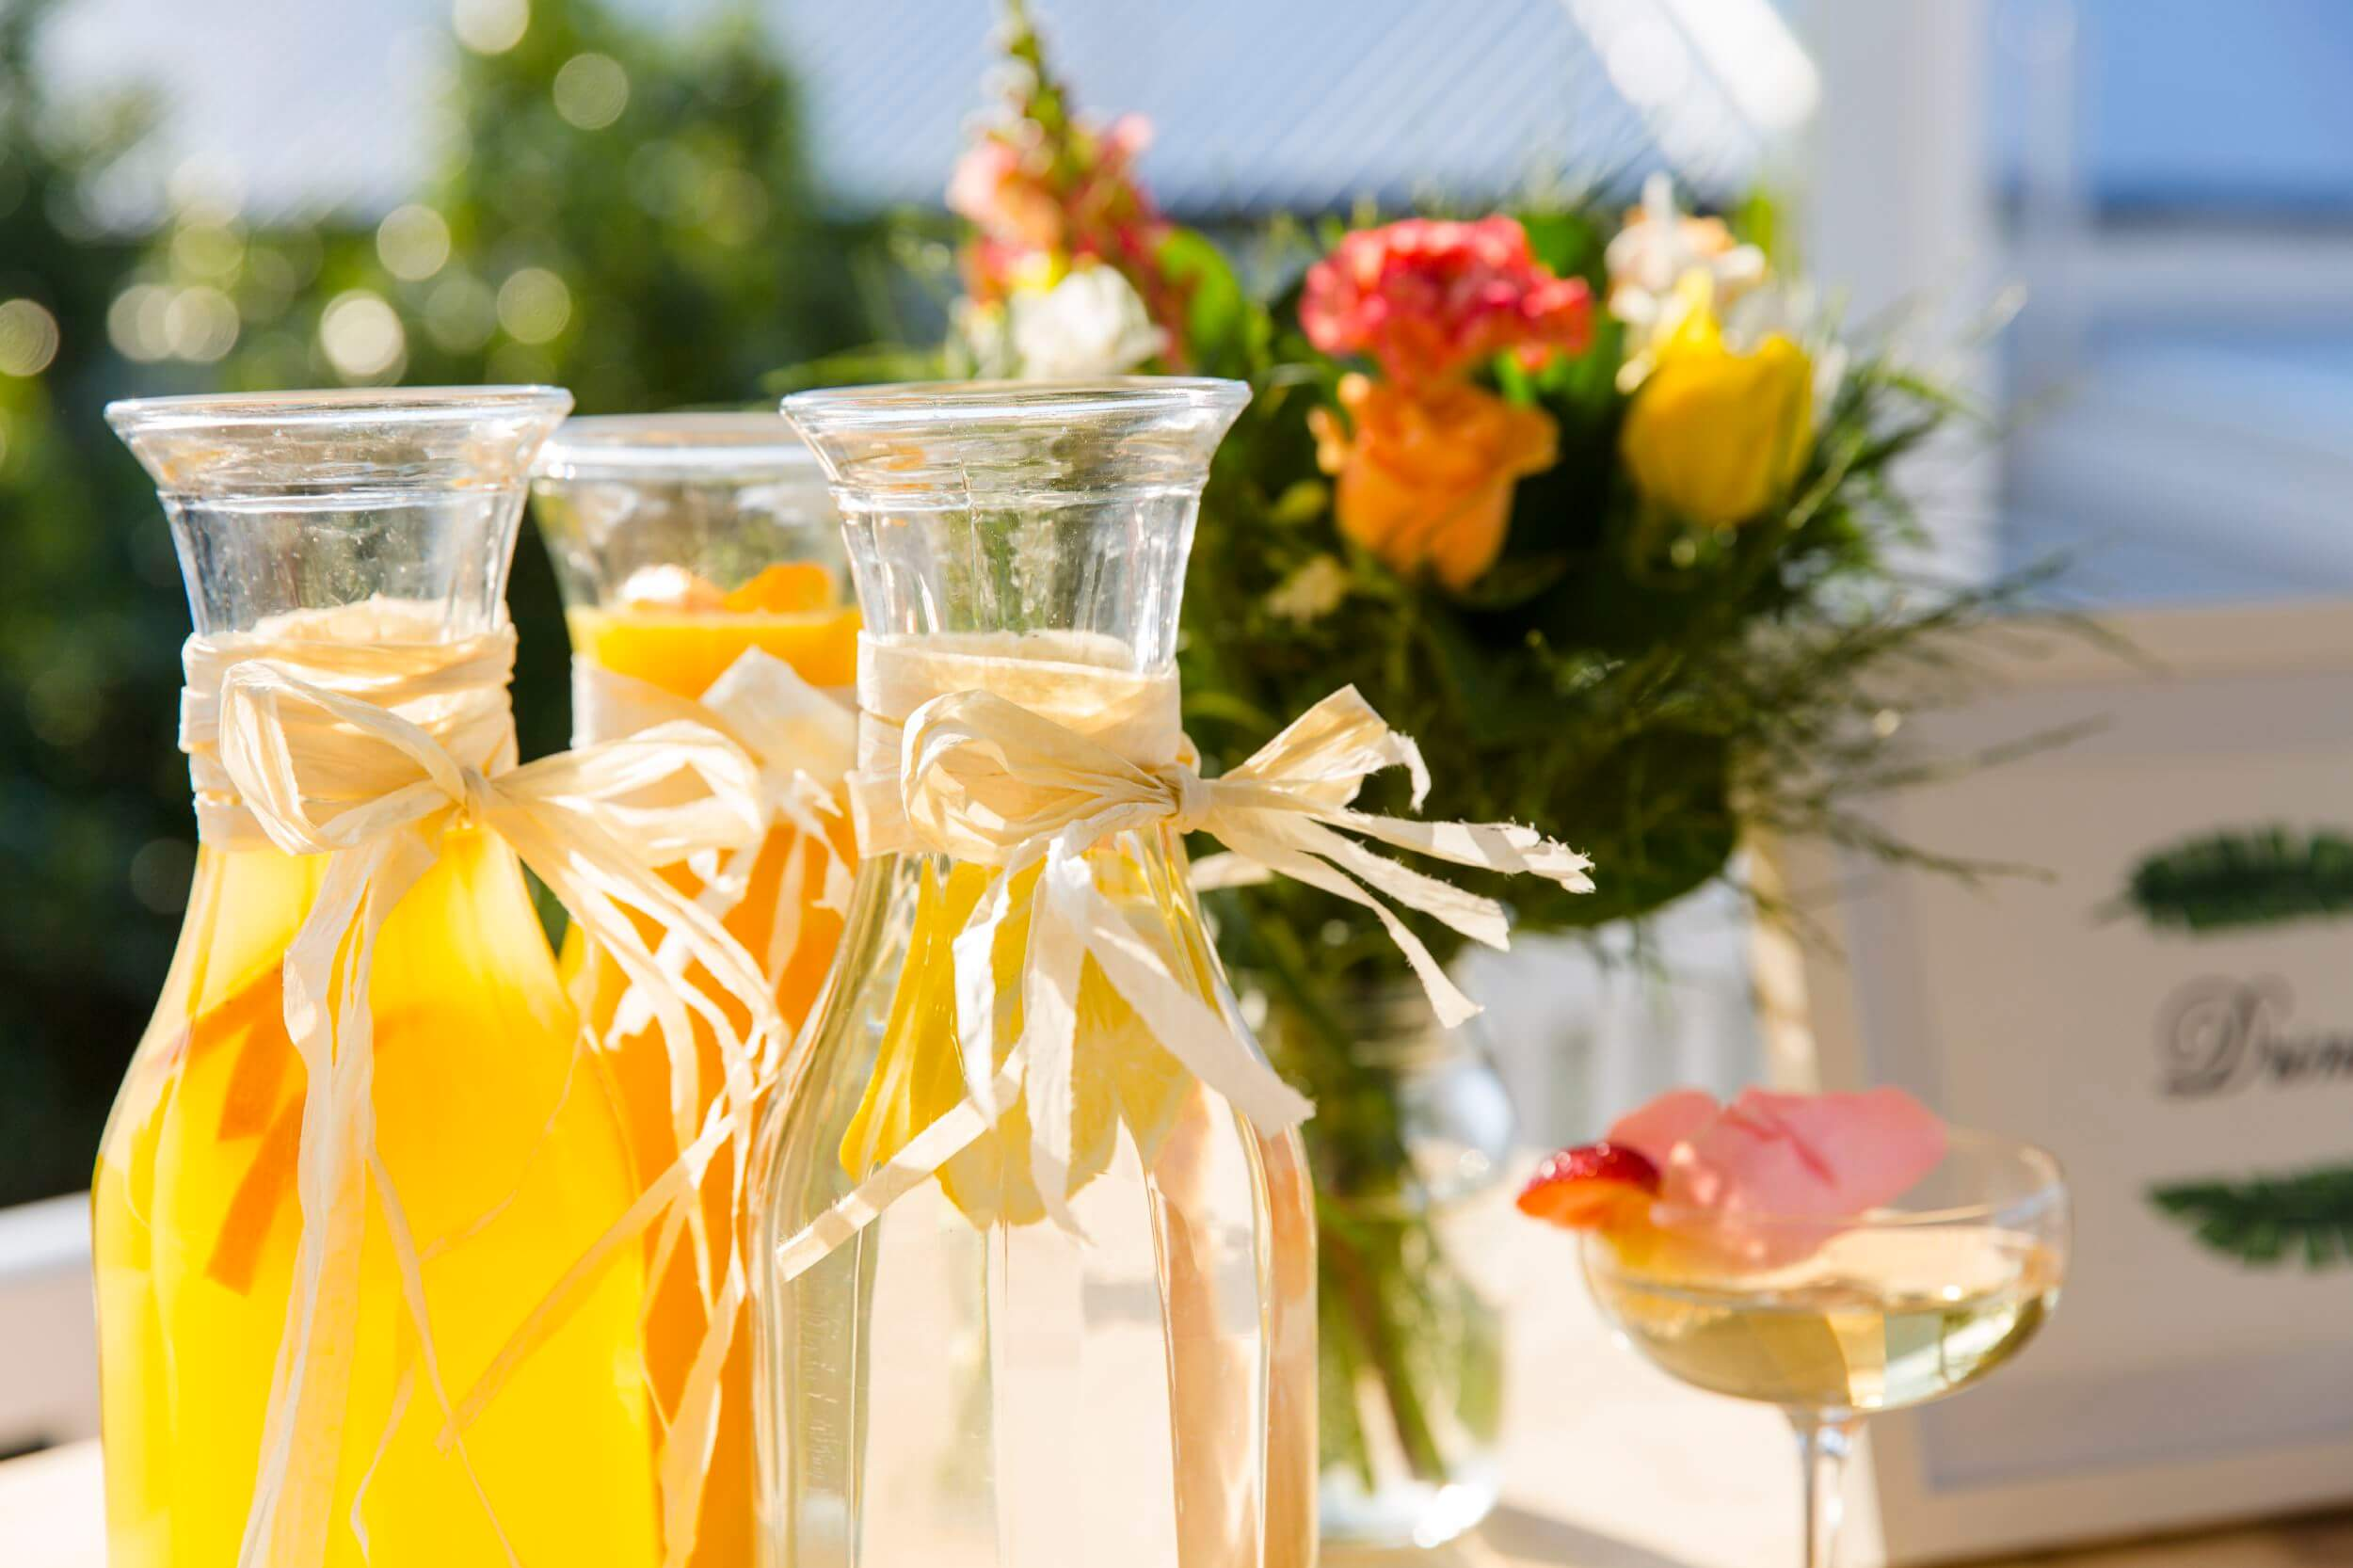 Gathering-events-mobile-bar-hire-6.jpg